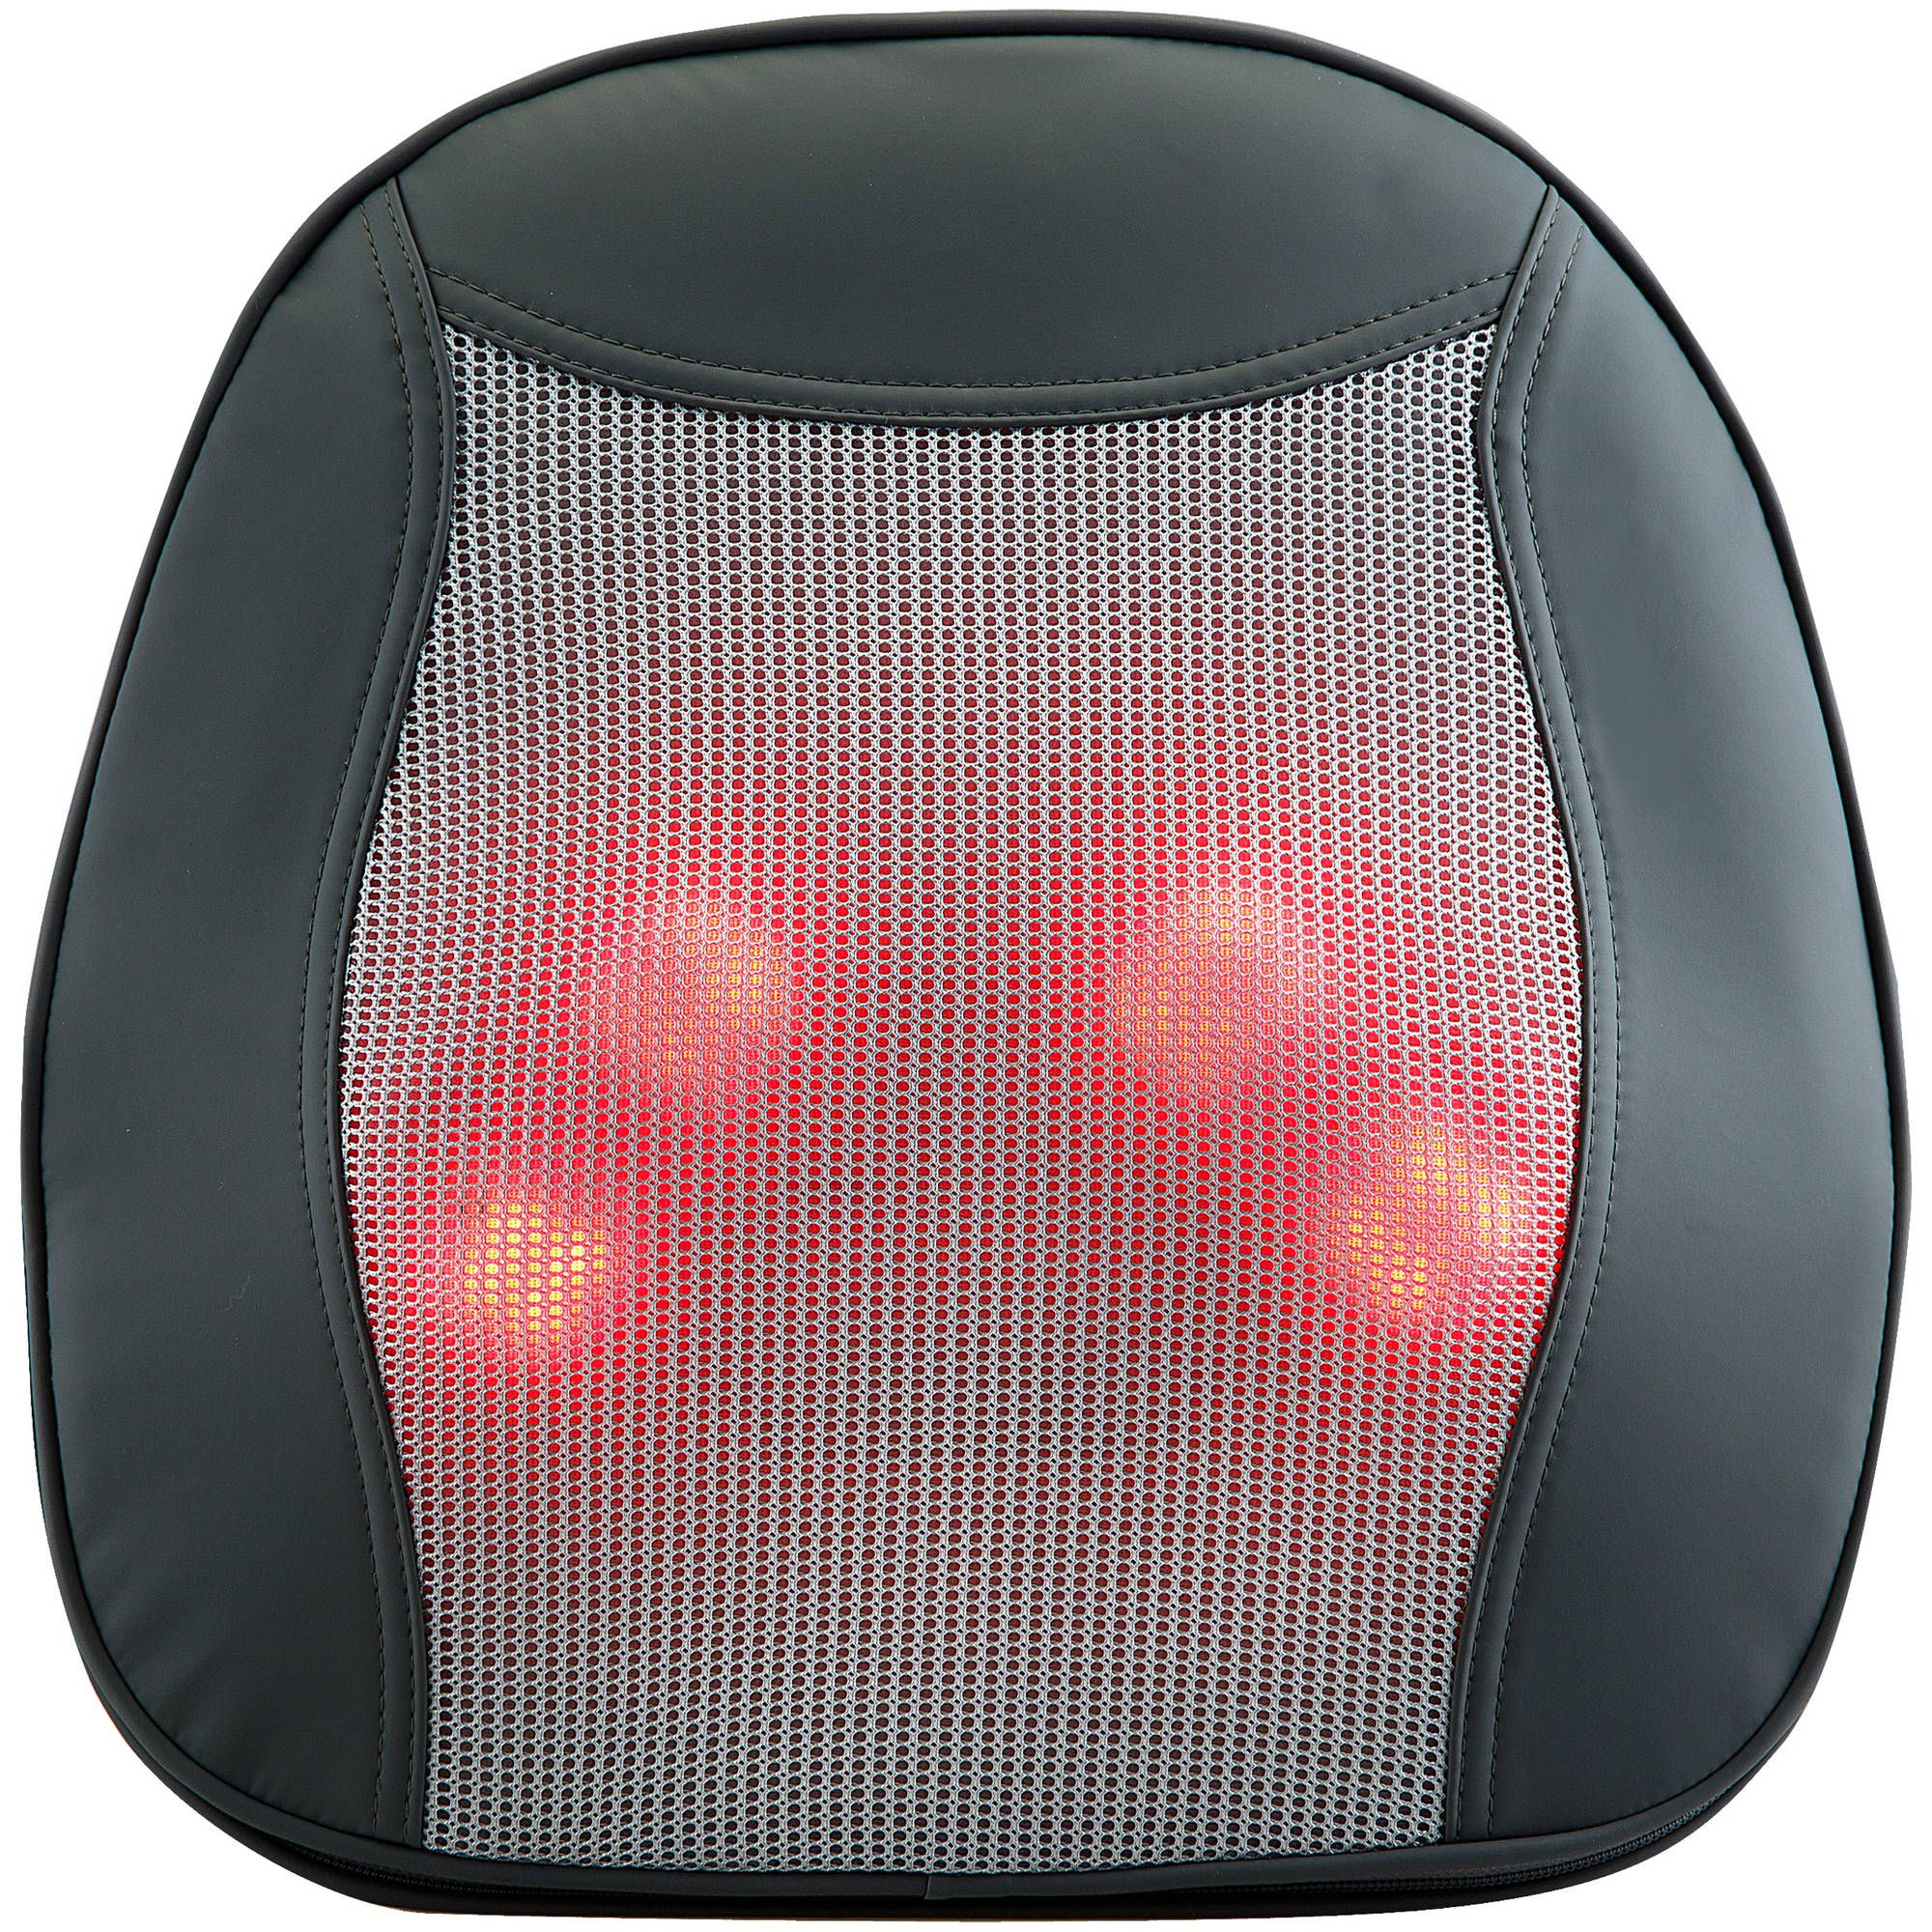 Homedics Thera P Seat Cushion Massager For Back With Heat Deep